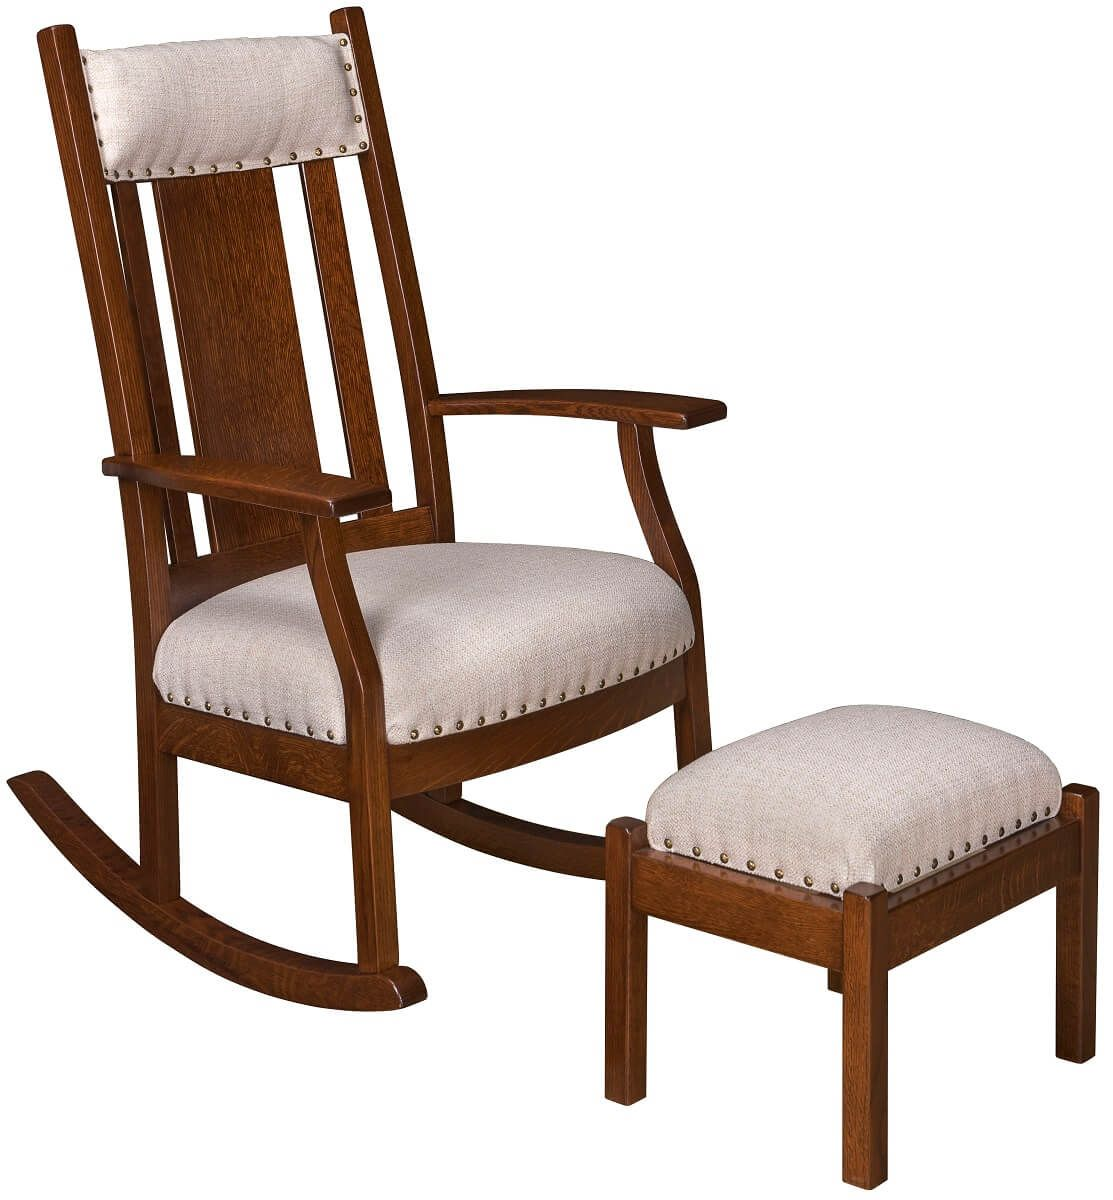 Eland Rocker and Ottoman